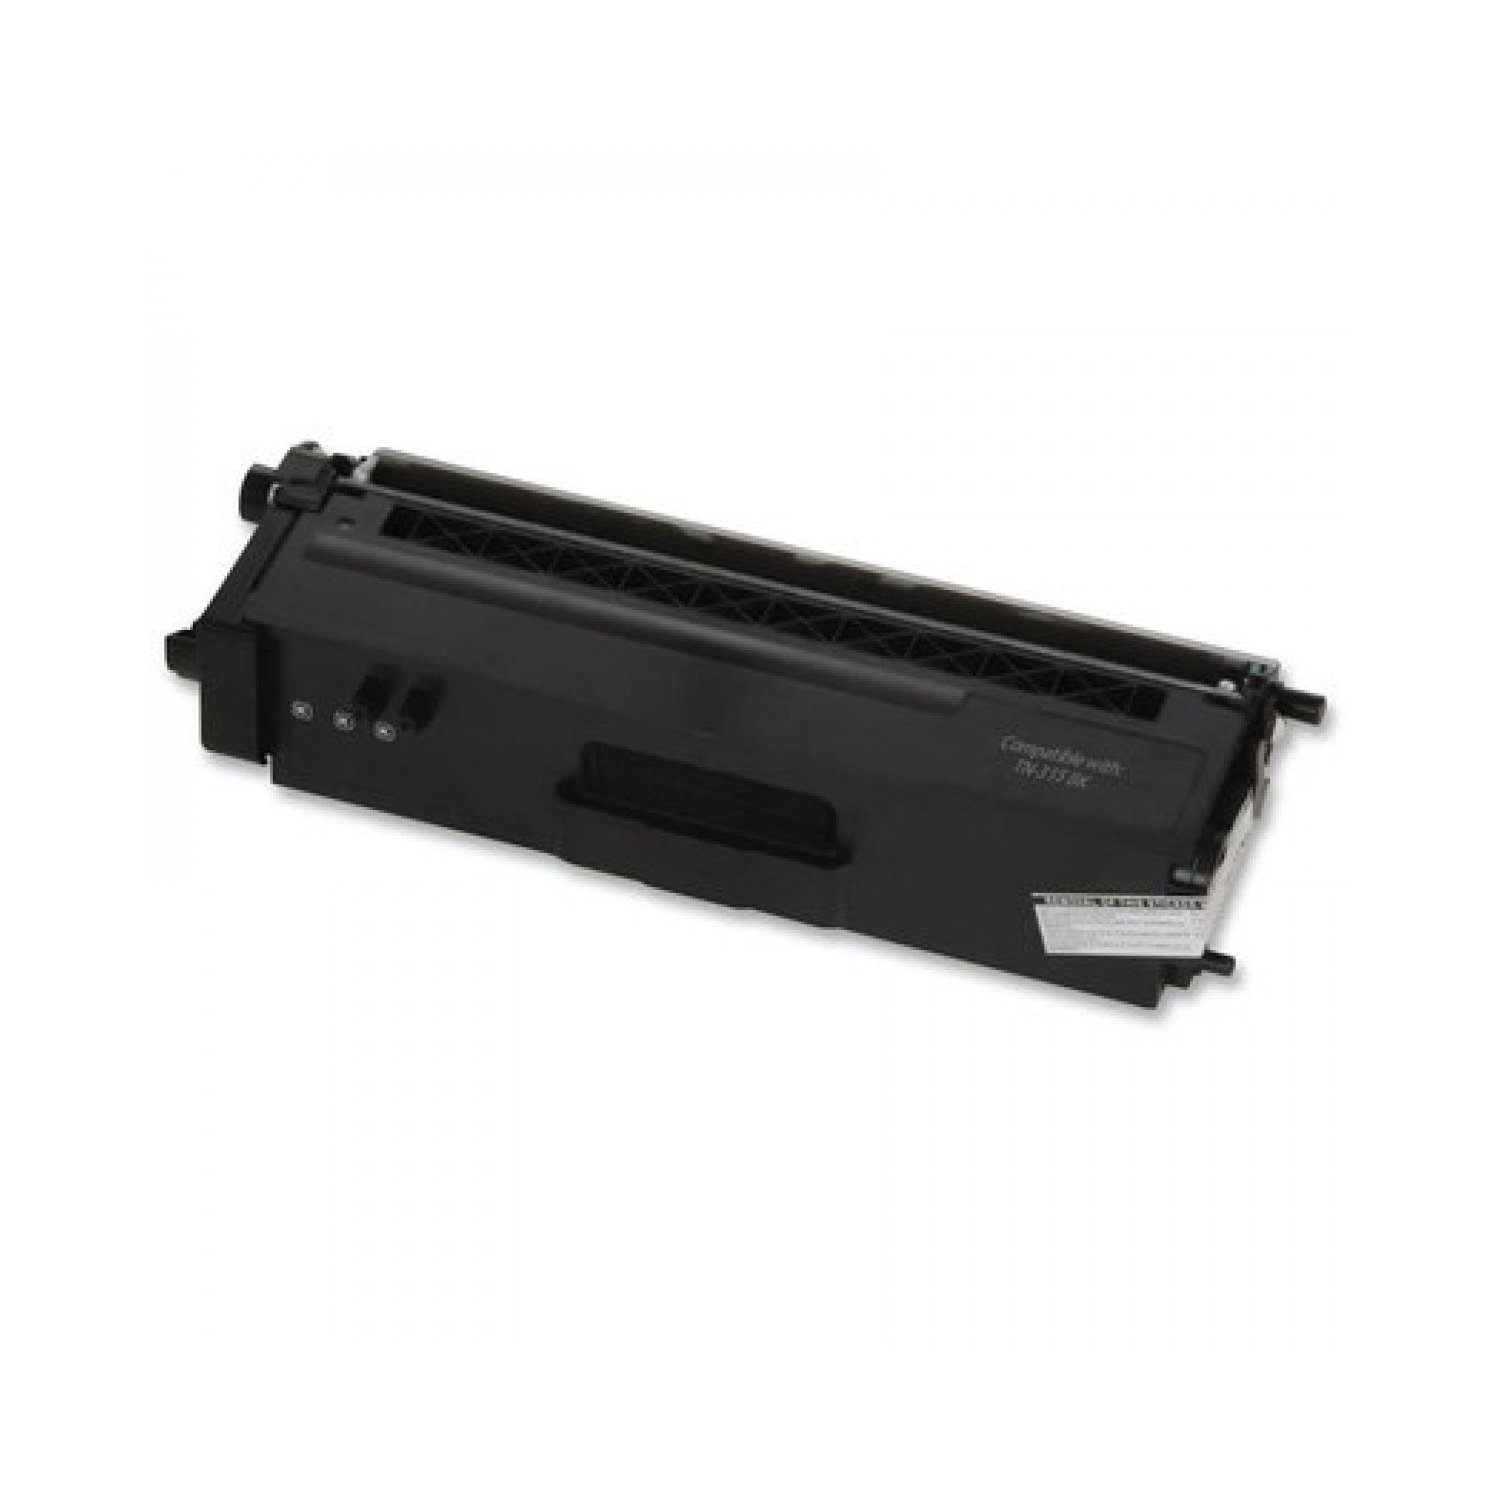 Brother TN310 / 315B: Black Toner Cartridge TN315BK (TN-315 BK) Compatible Remanufactured for Brother TN315 Black